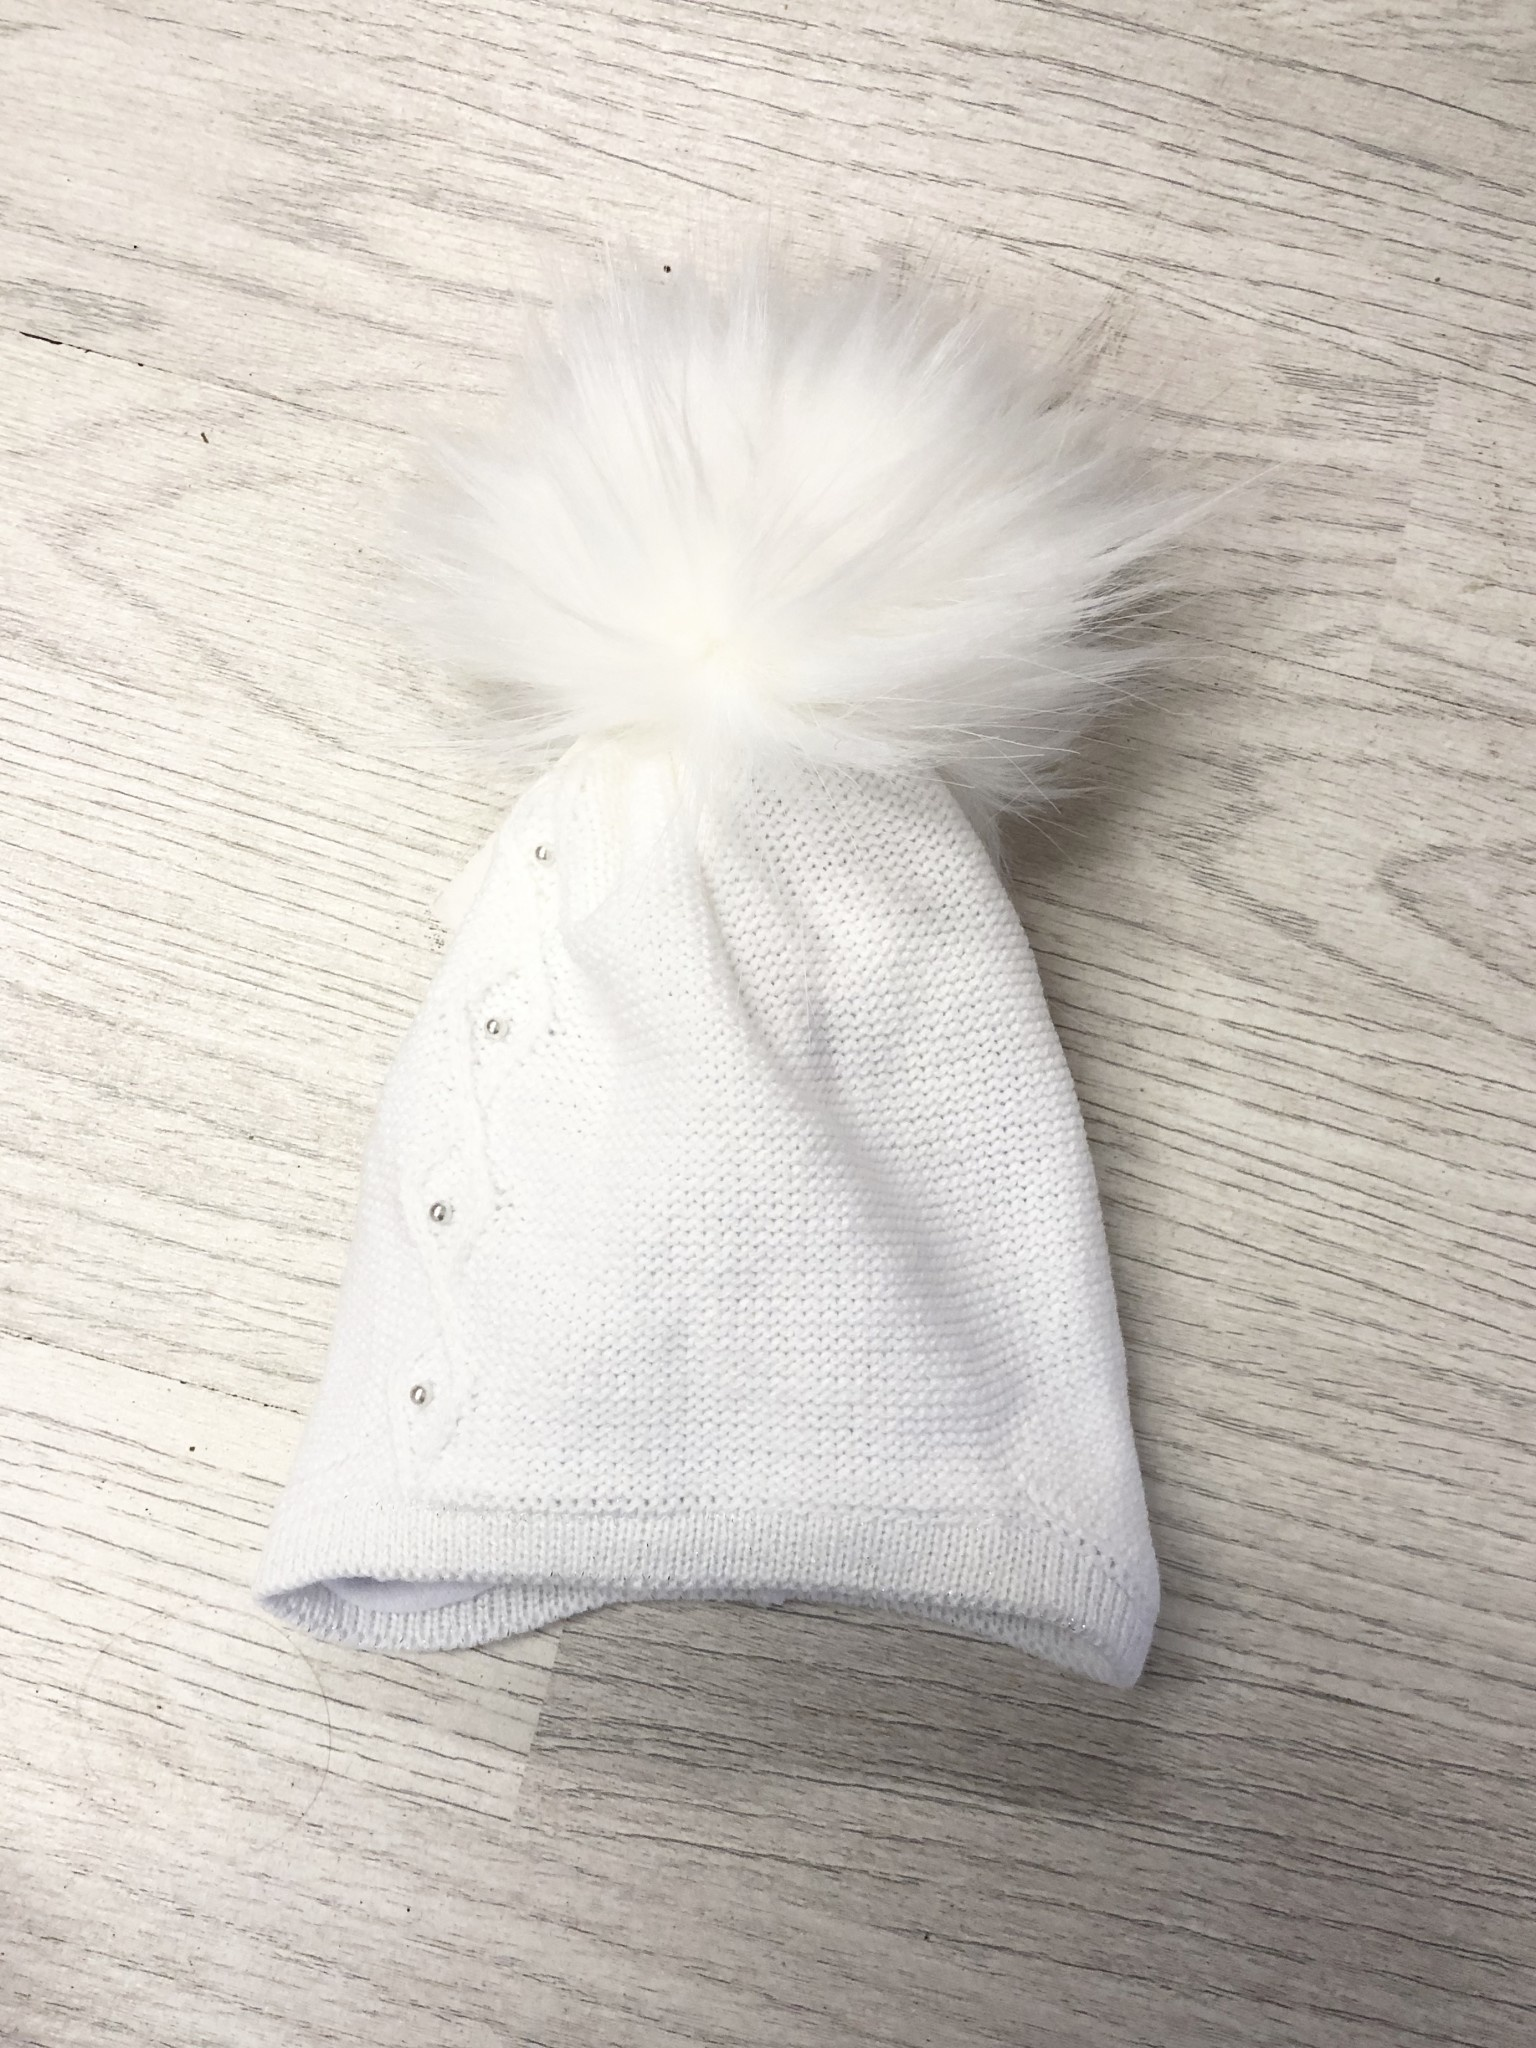 Pex Pex Knit White Hat With Faux Fur Pom & Pearl Detail